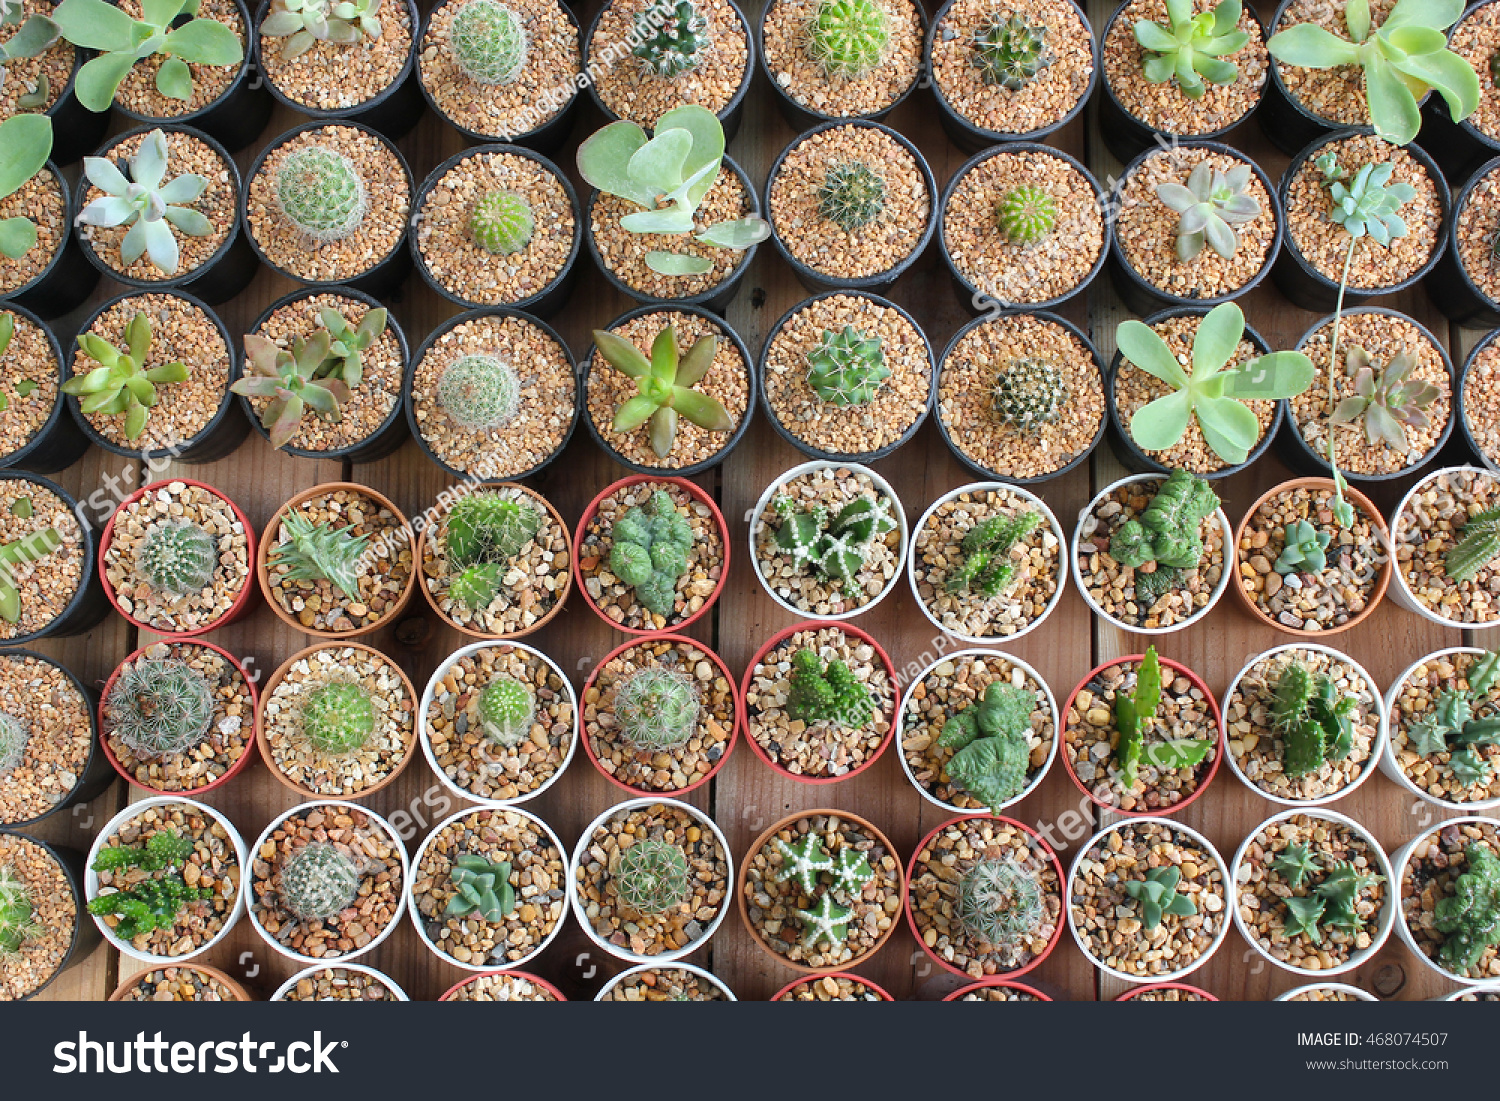 Cactus Pots For Sale Small Cactus Flower Pot Cactus Sale Stock Photo 468074507